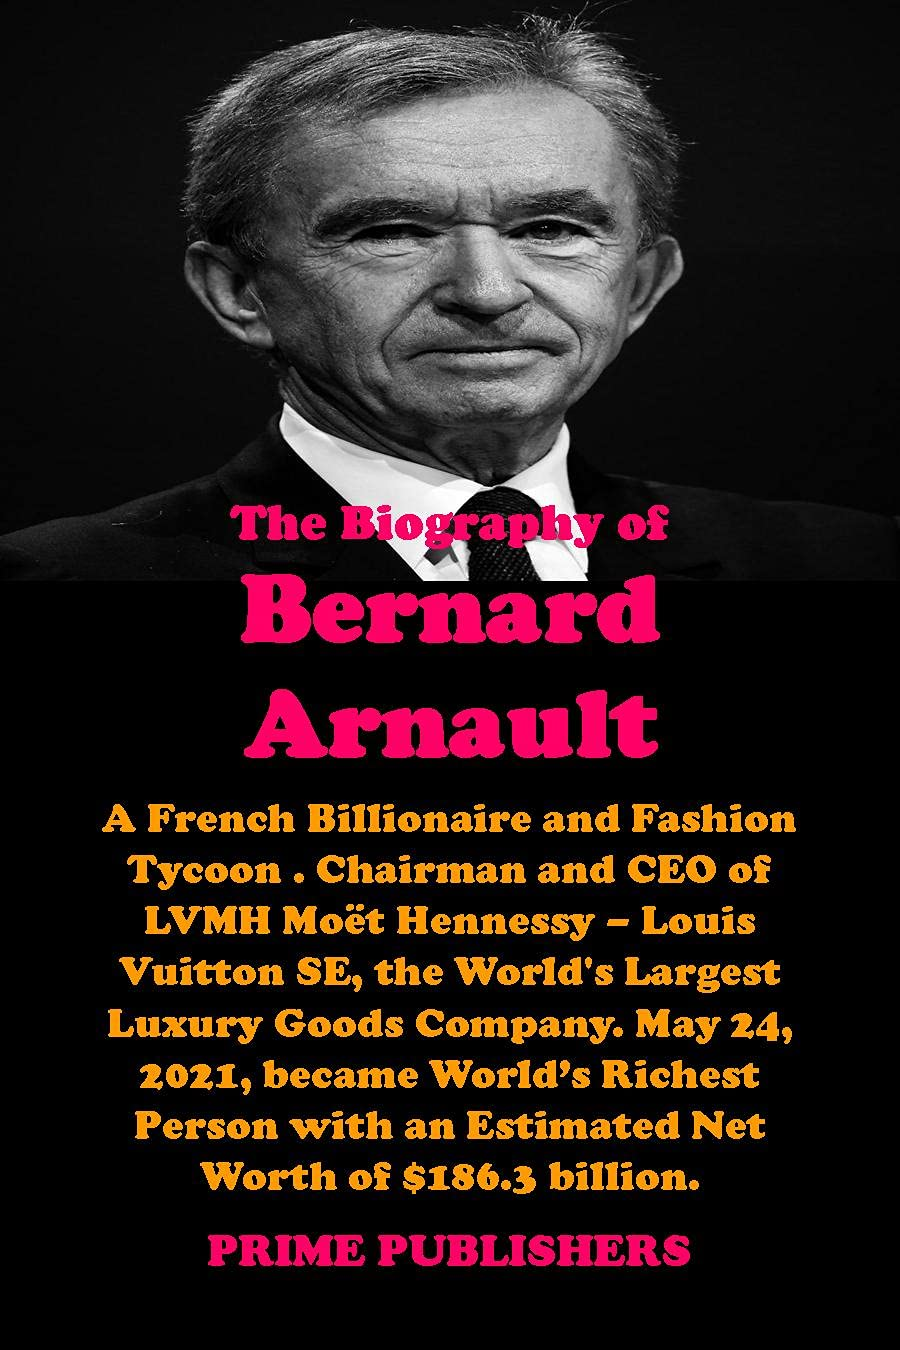 THE BIOGRAPHY OF BERNARD ARNAULT: A French Billionaire and Fashion Tycoon . Chairman and CEO of LVMH Moët Hennessy – Louis Vuitton SE, the World's Largest Luxury Goods Company.